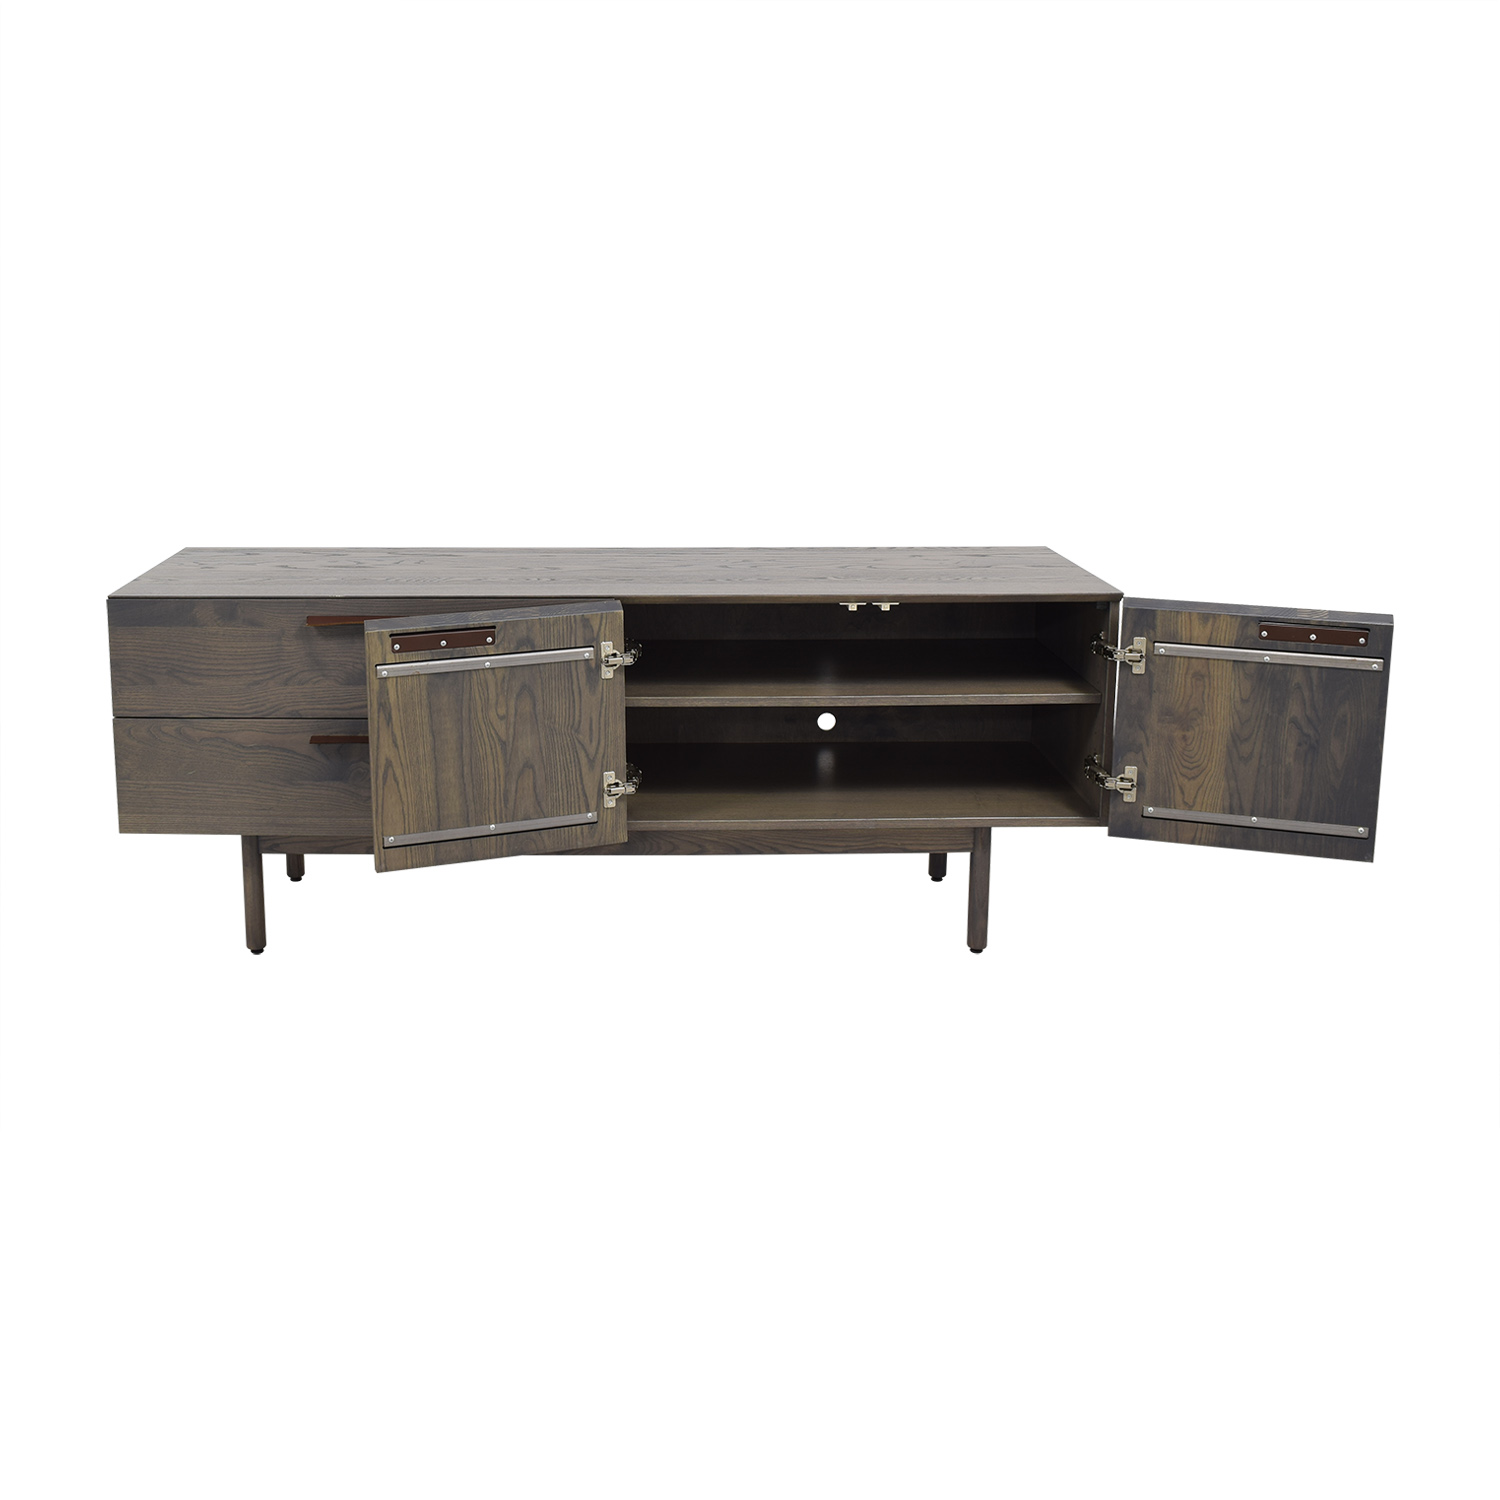 Entertainment Unit with Two Drawers and Cabinets dimensions